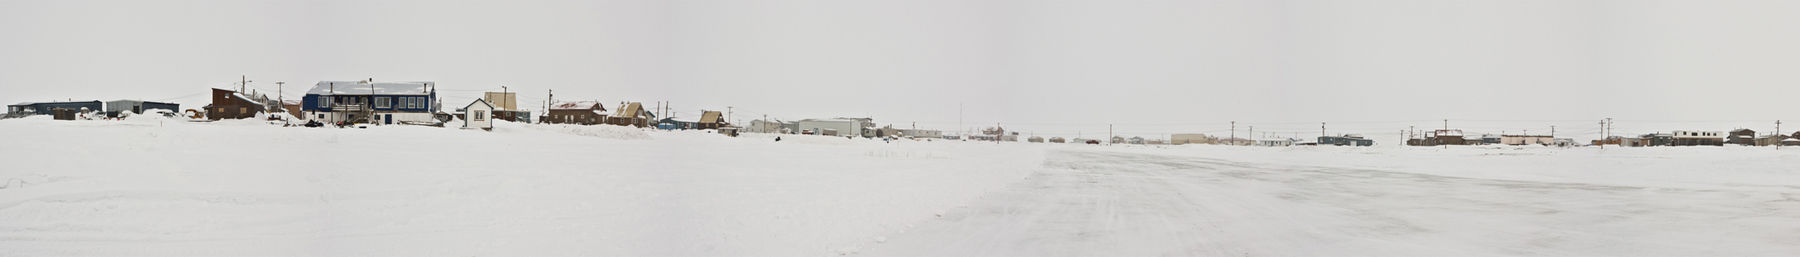 Hamlet of Tuktoyaktuk captured from the ice road to Inuvik, Northwest Territories, Canada